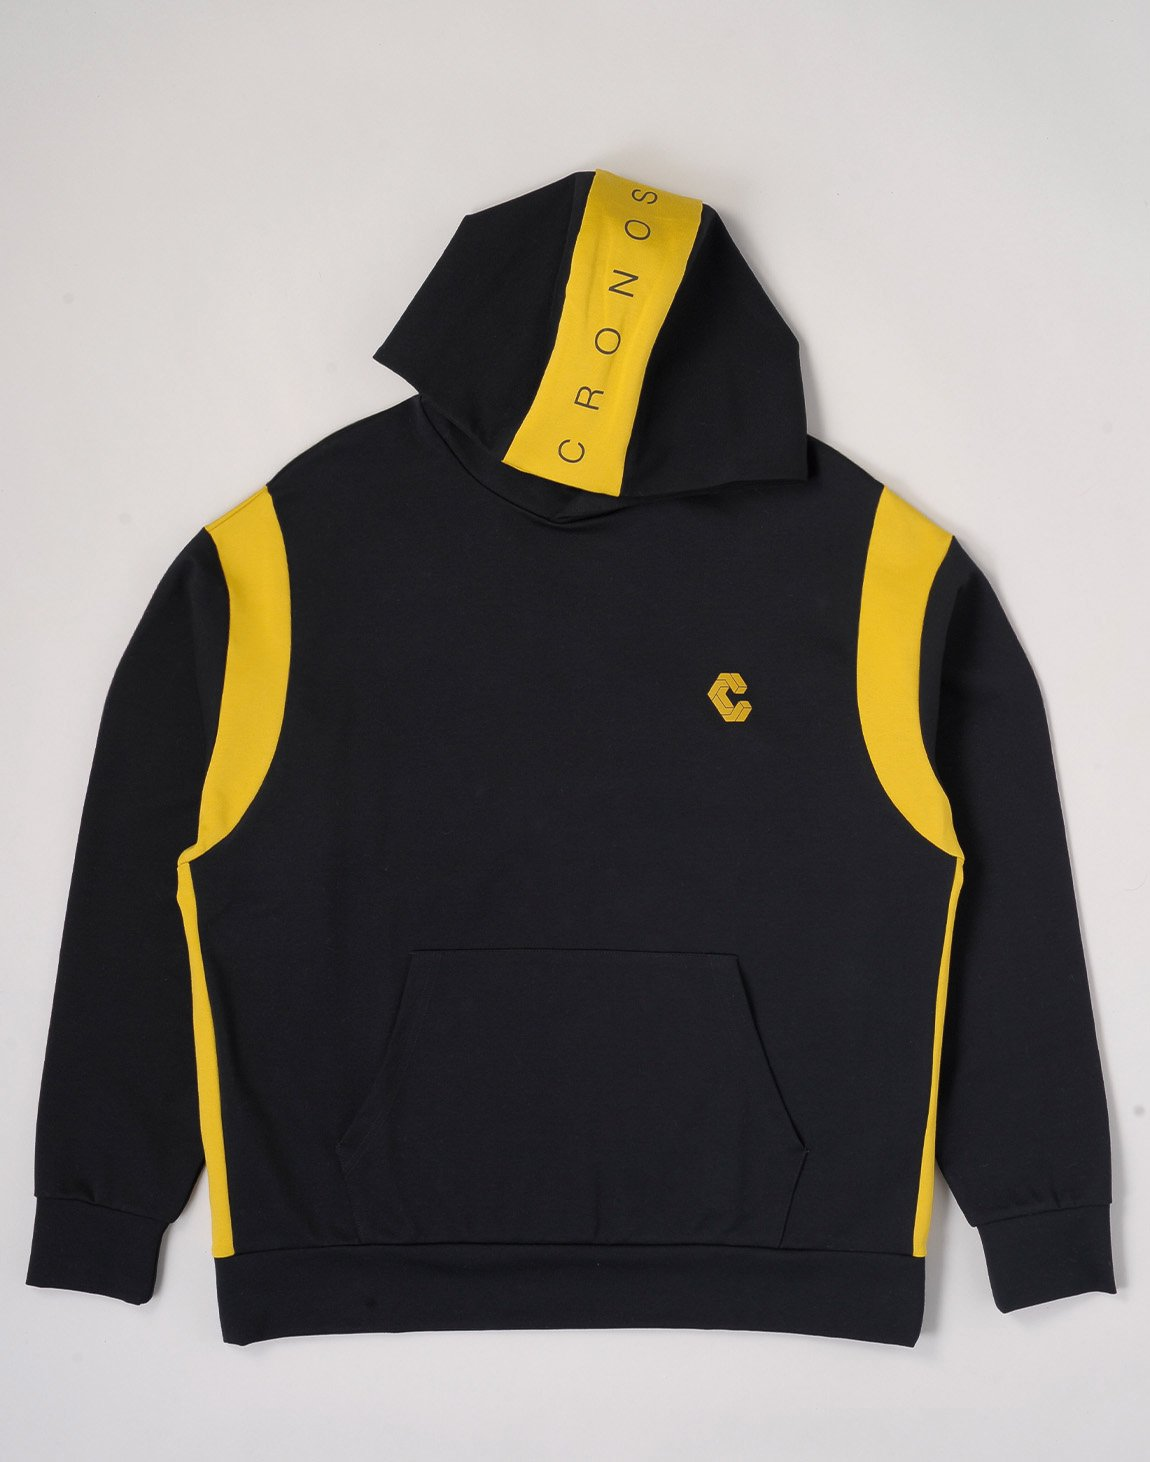 <img class='new_mark_img1' src='https://img.shop-pro.jp/img/new/icons1.gif' style='border:none;display:inline;margin:0px;padding:0px;width:auto;' />CRONOS HEAD LOGO HOODIE【BLACK×YELLOW】